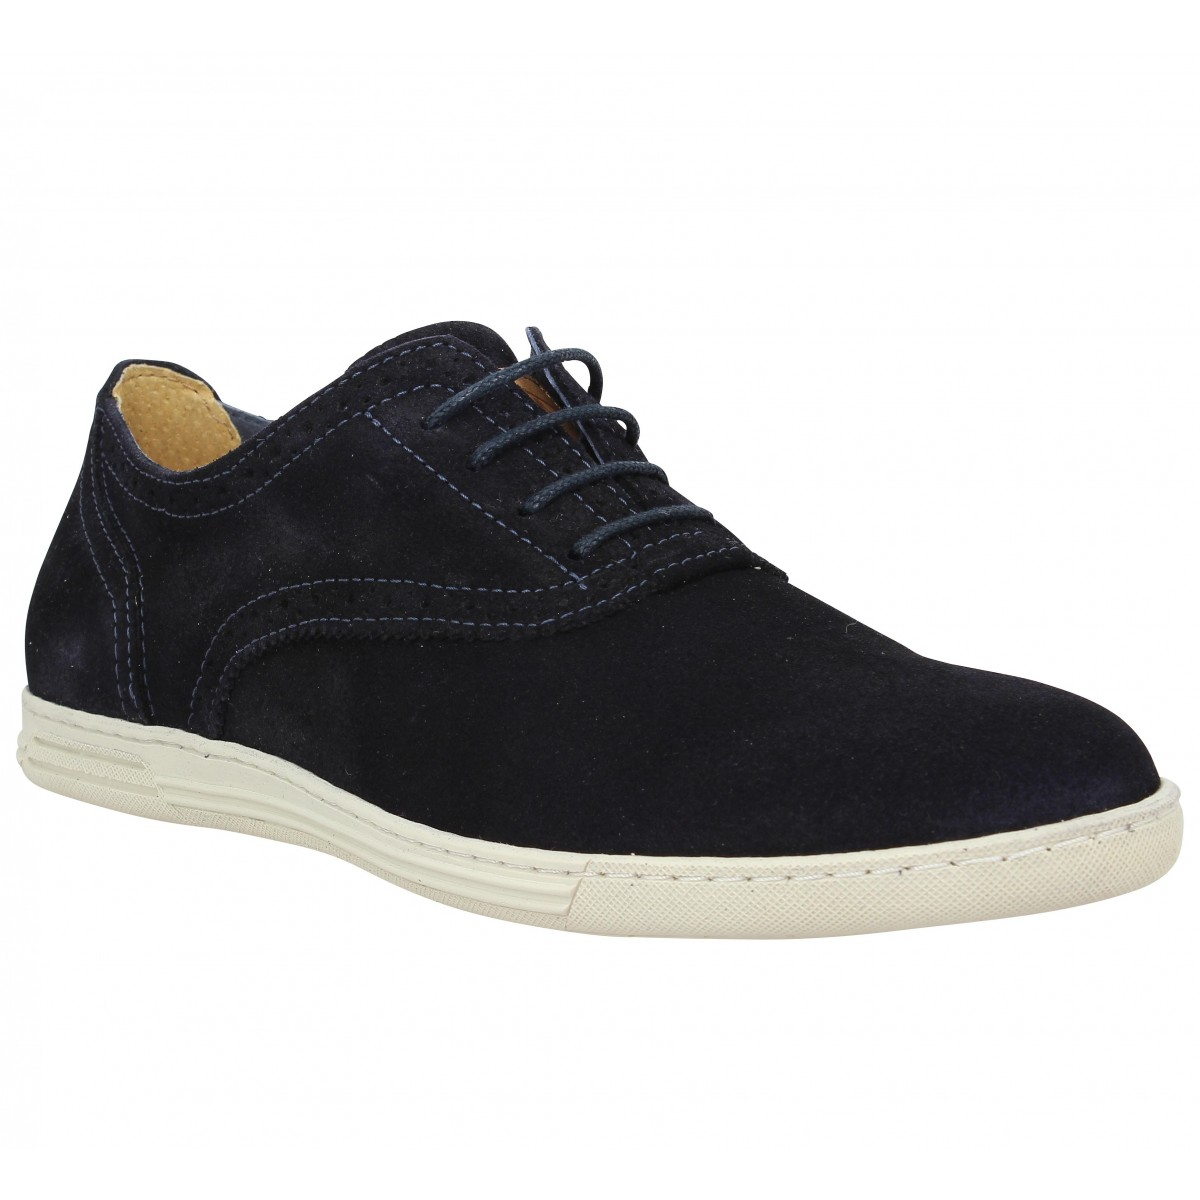 Chaussures à lacets PLDM by PALLADIUM James Marine